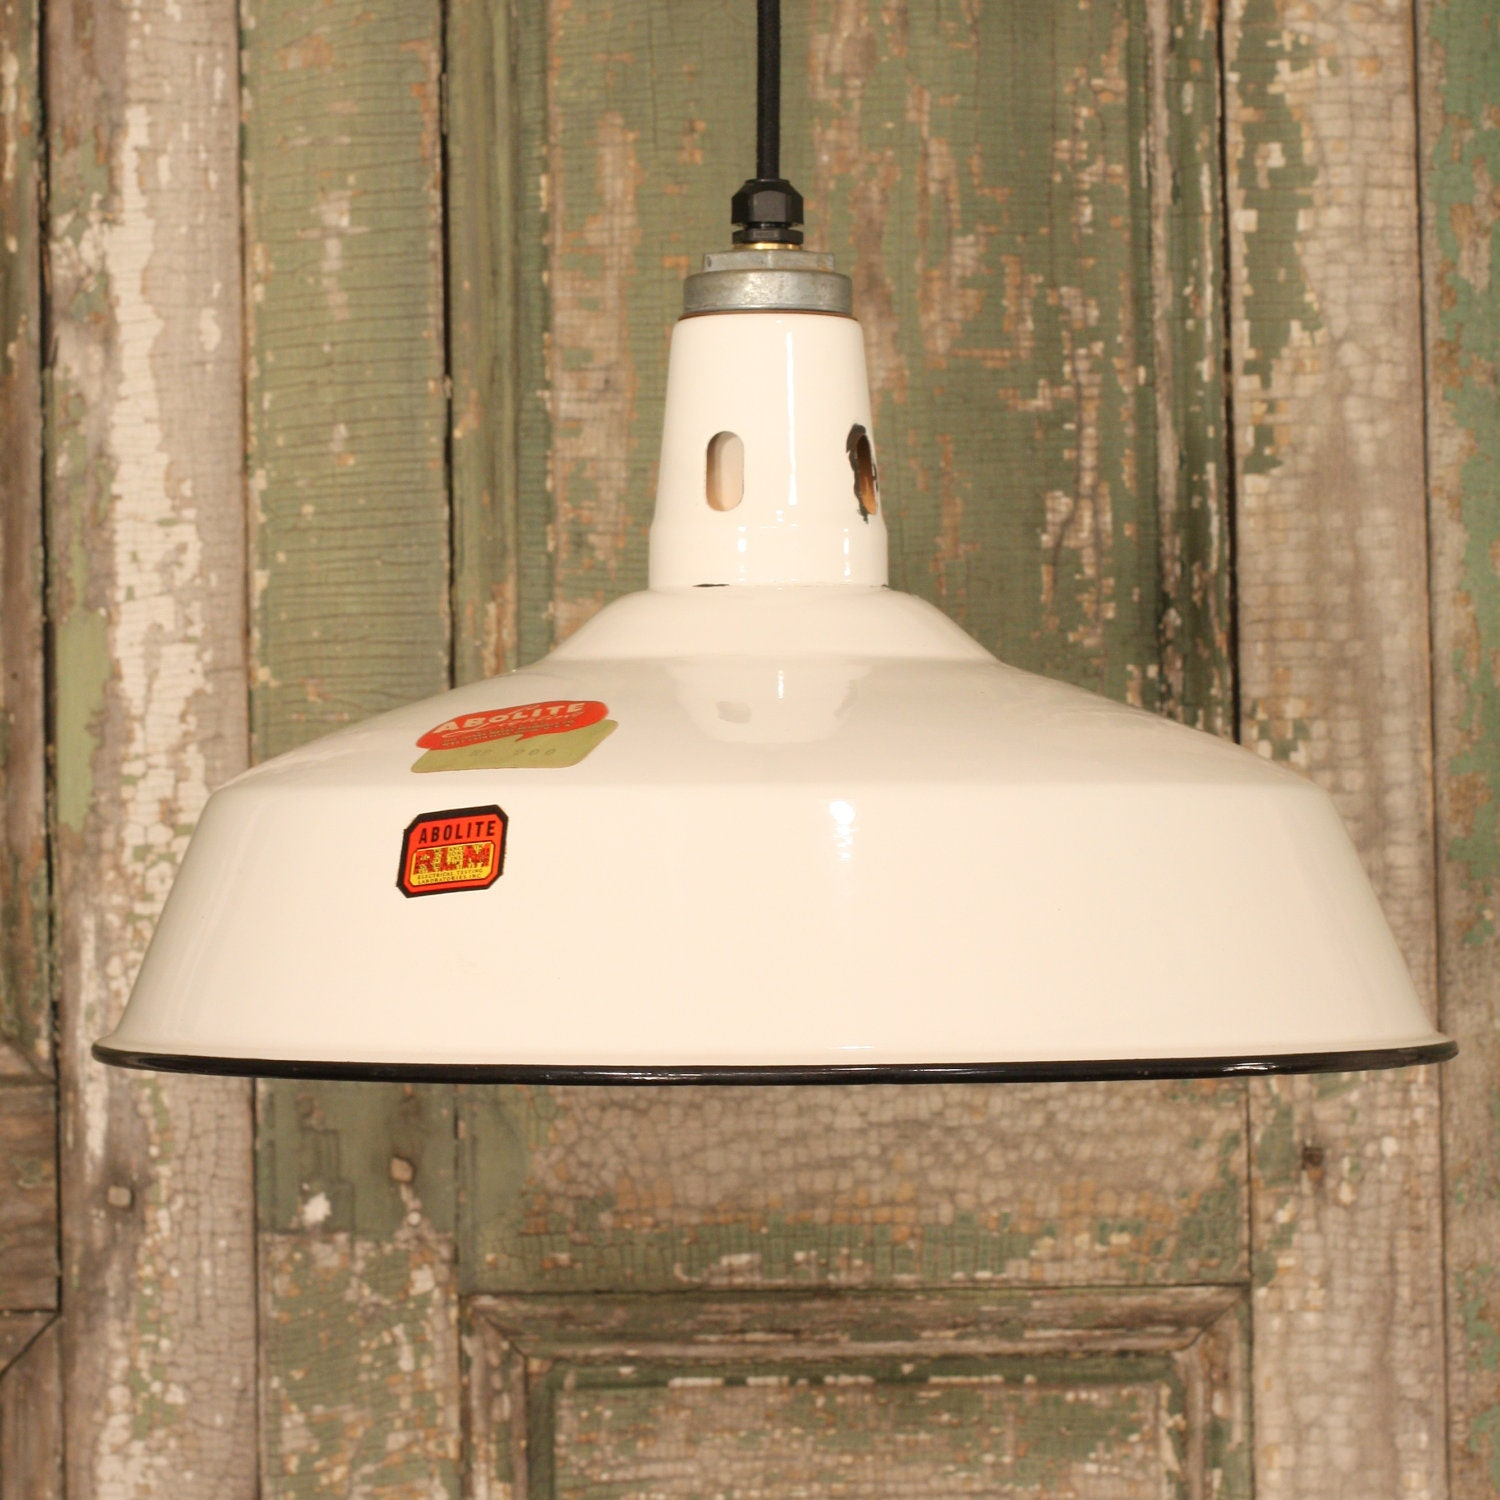 Vintage And Industrial Lighting From Etsy: Industrial Lighting With Vintage White Enamel Shade From